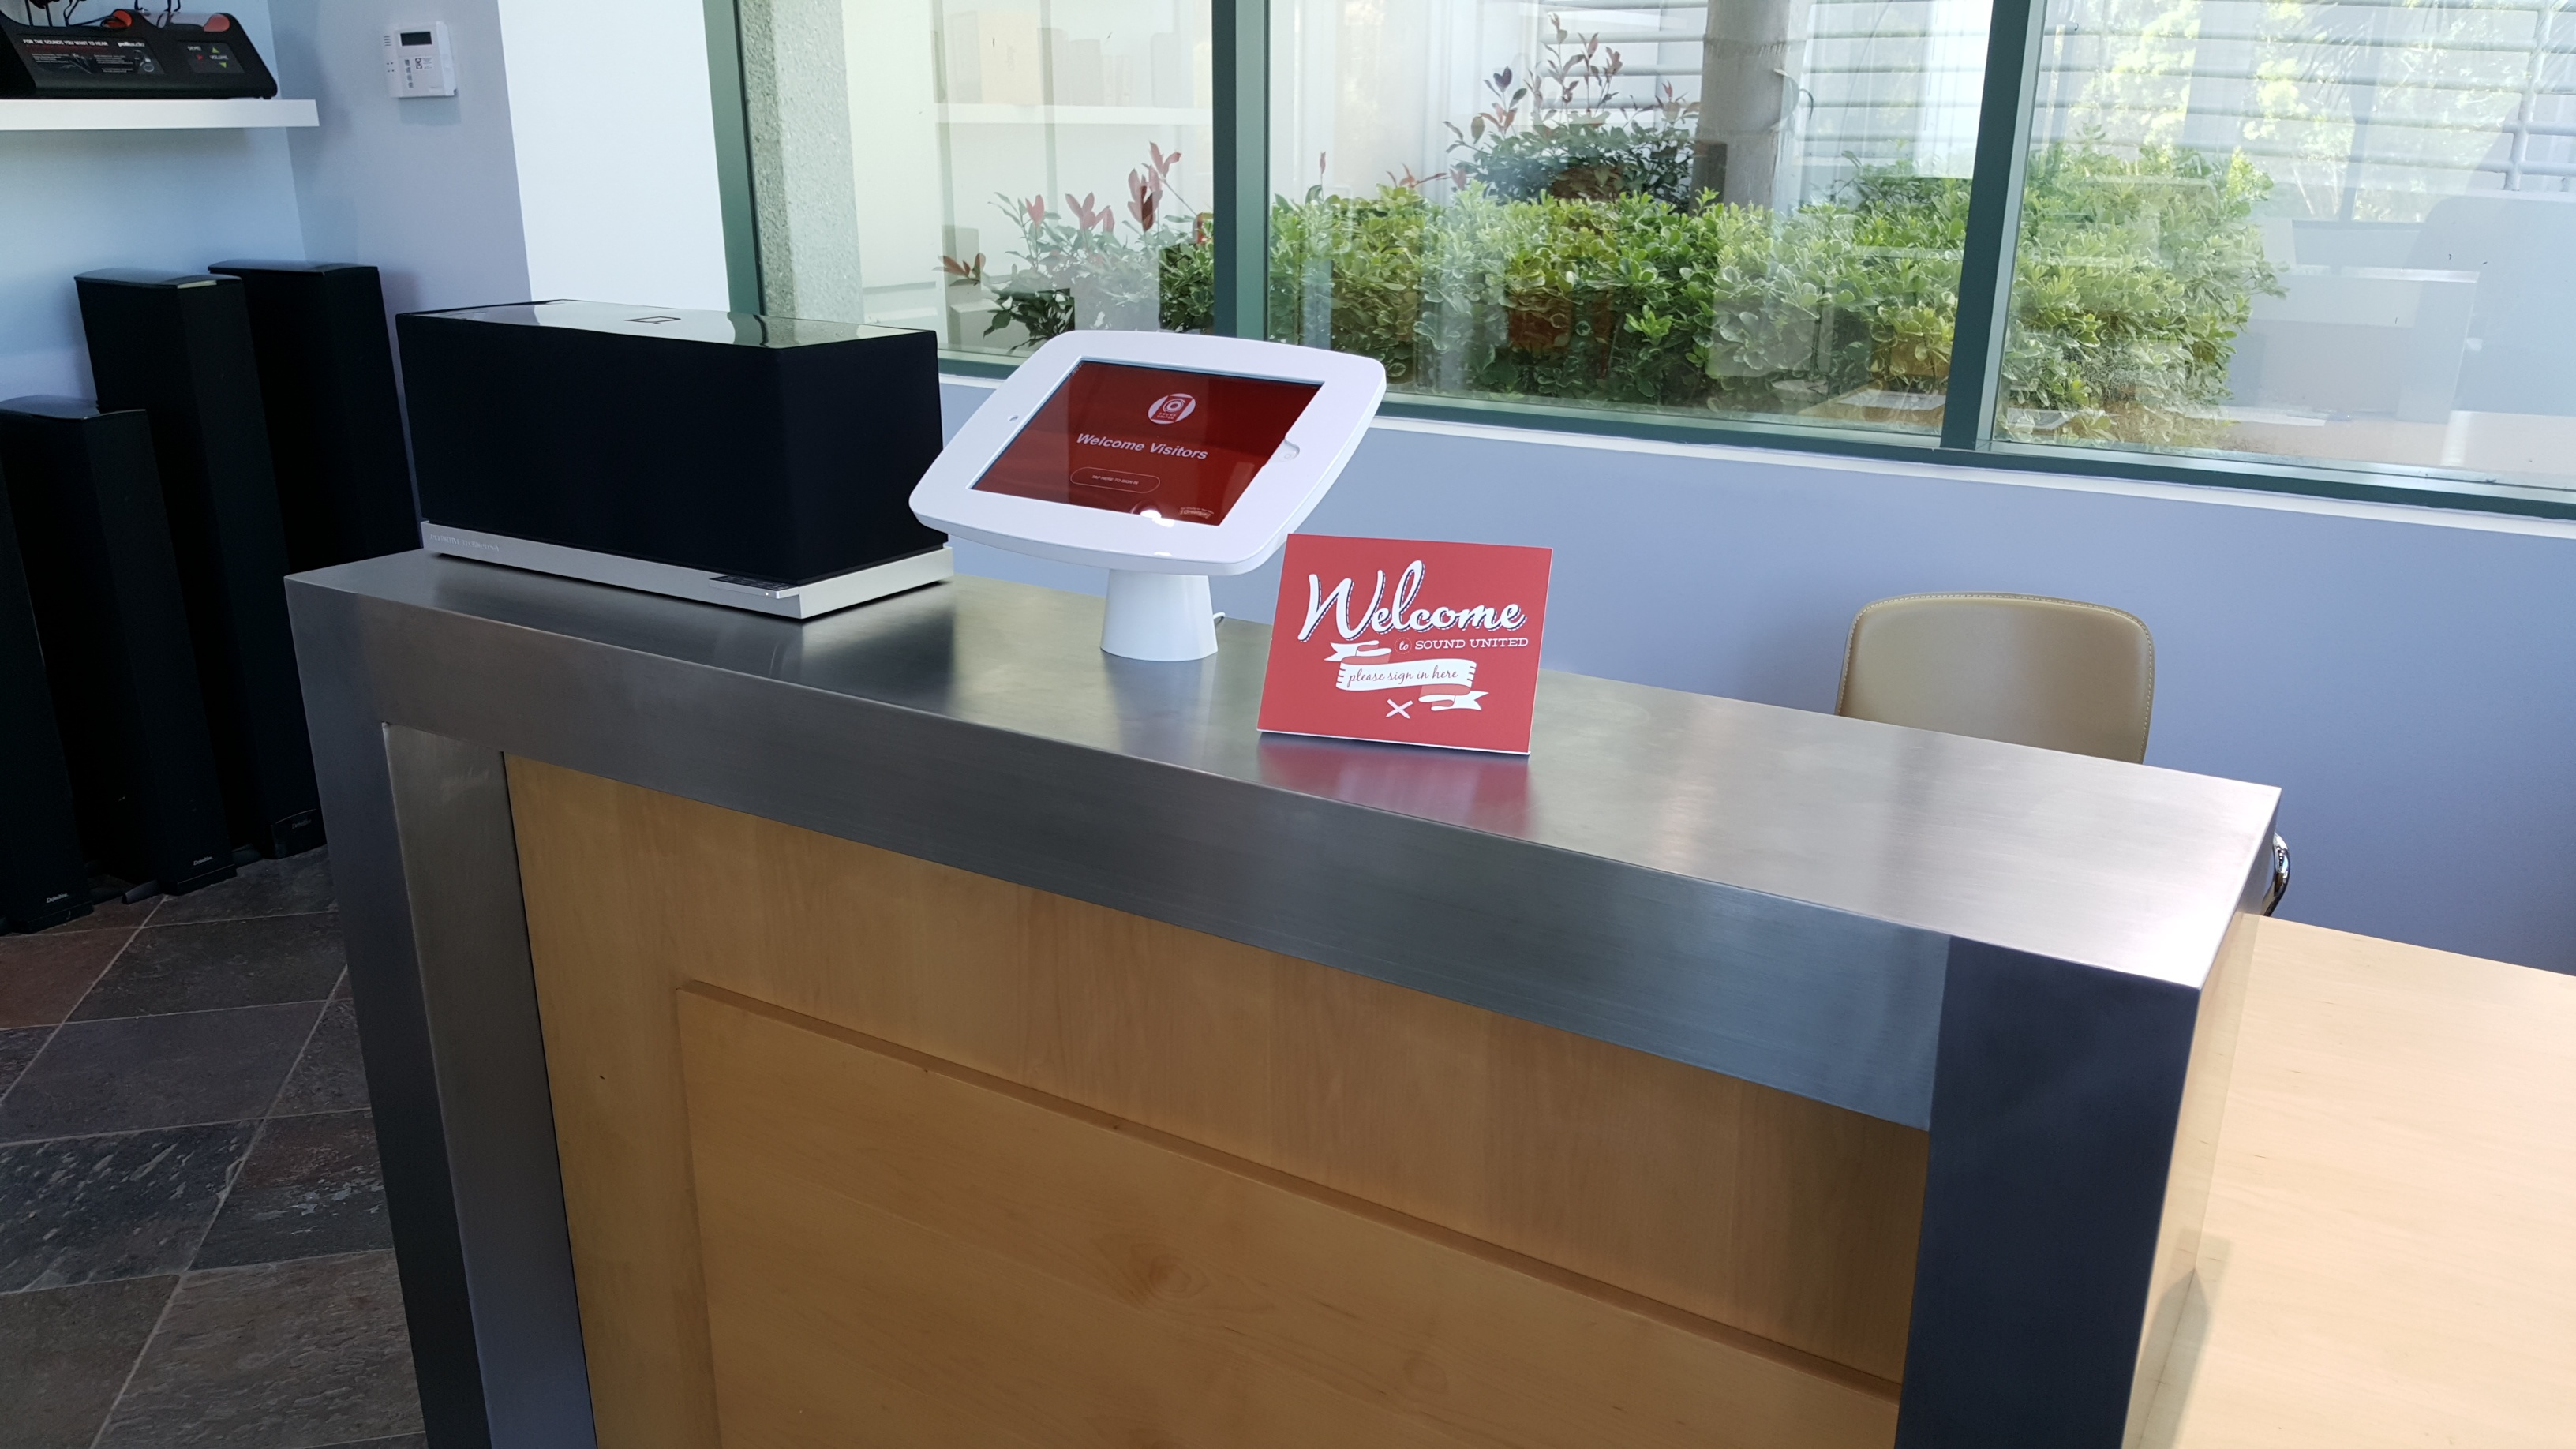 The iPad receptionist app on a kiosk